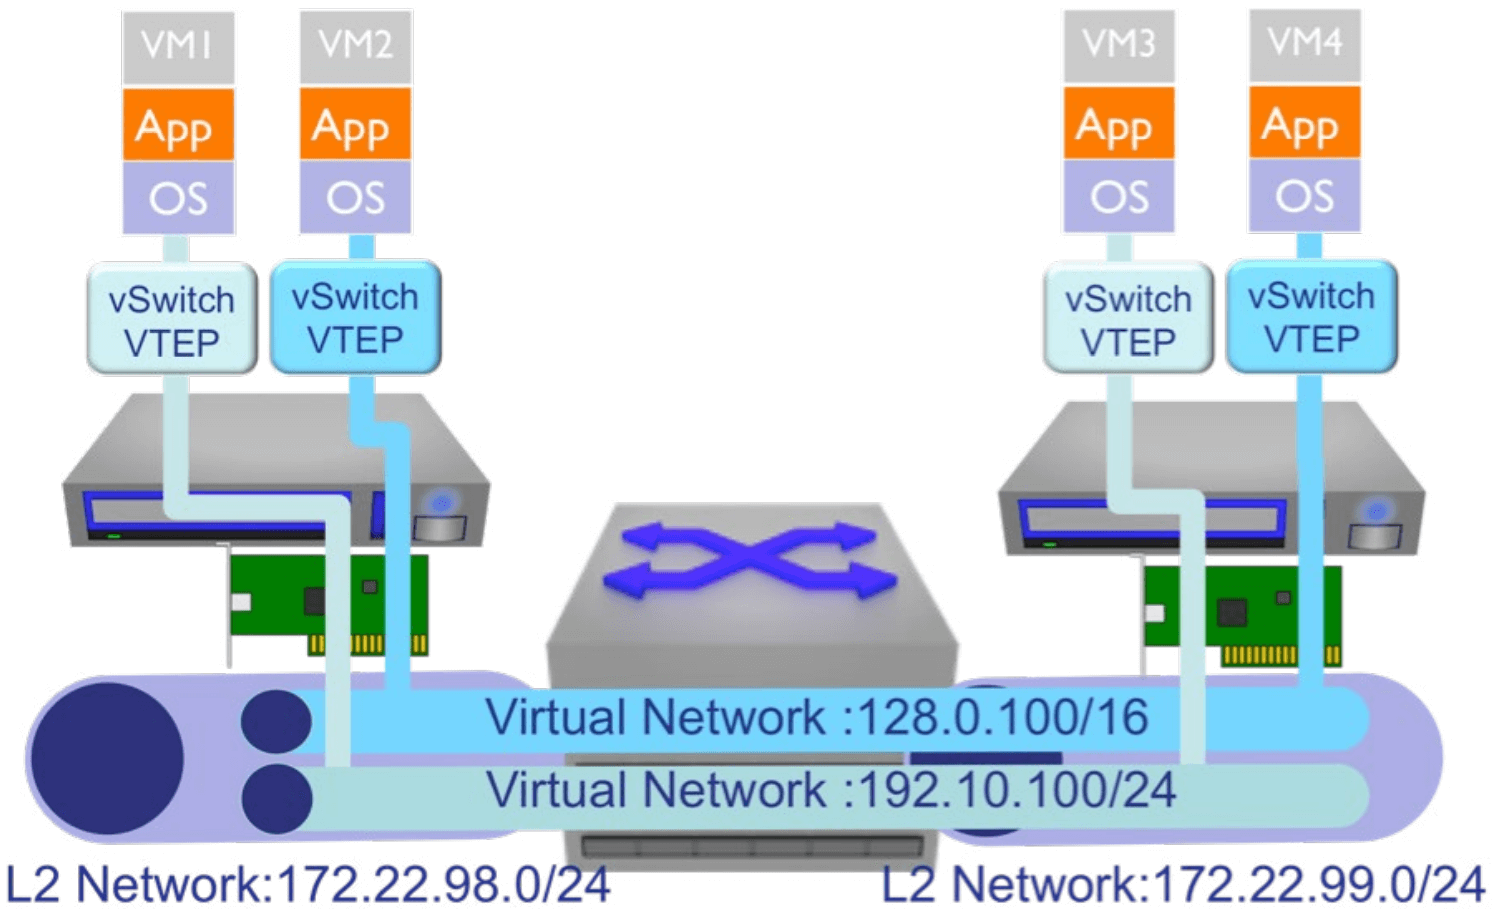 VXLAN logical networks create logical layer 2 segments